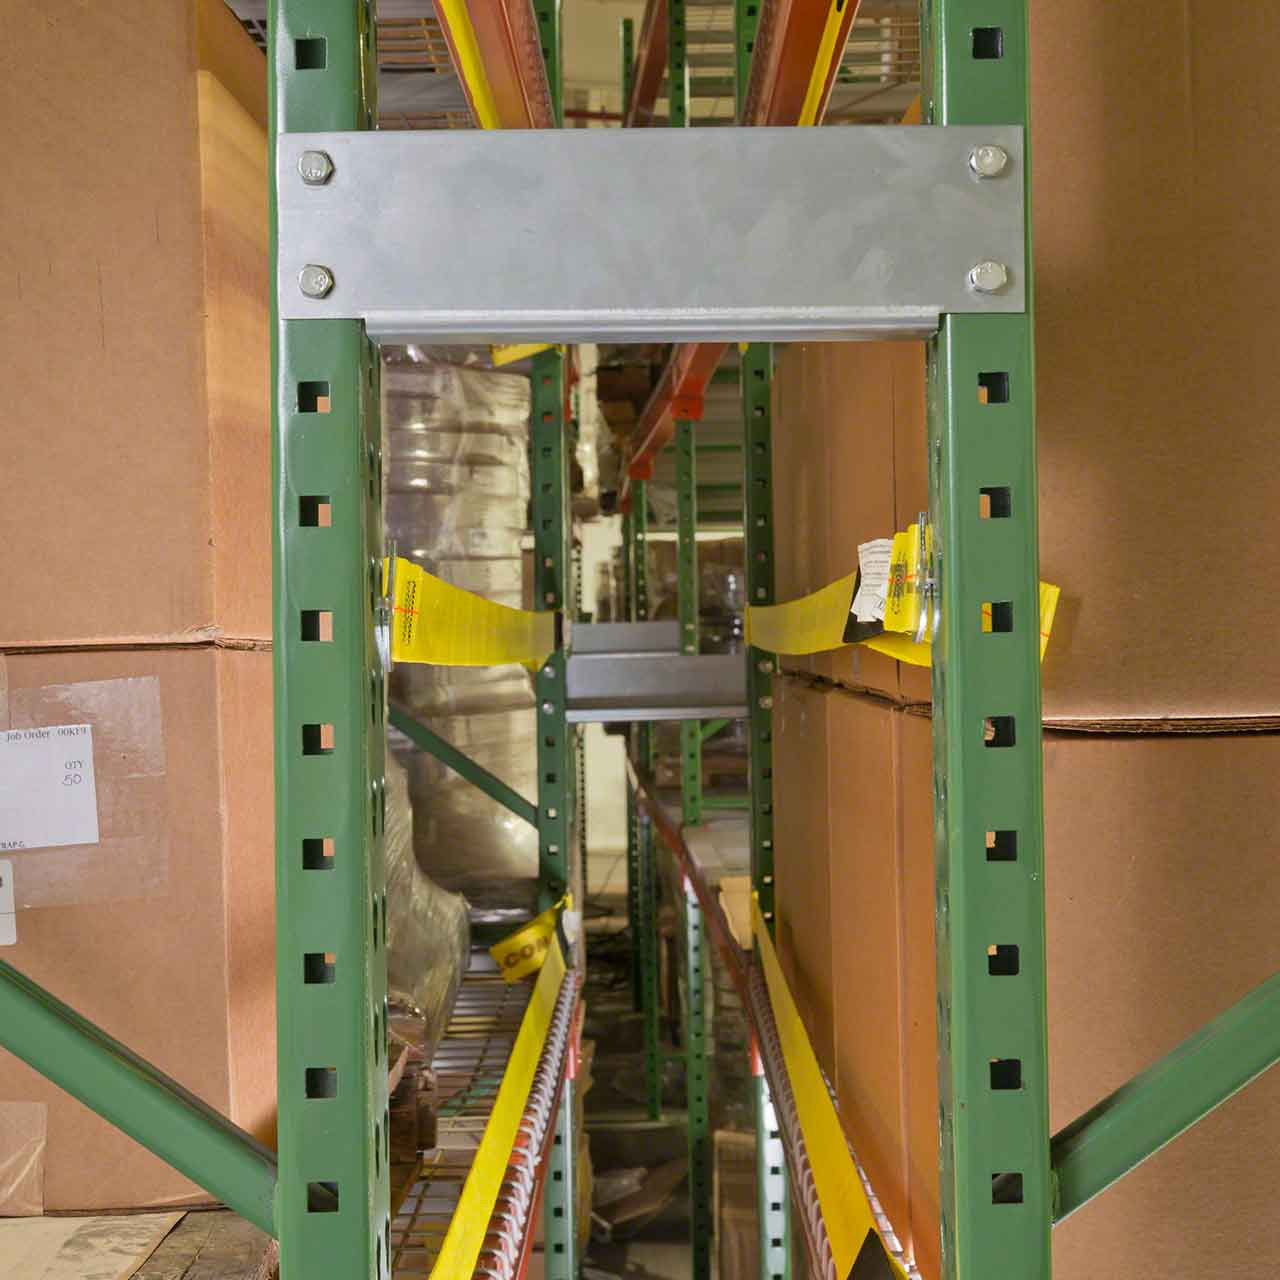 Pallet racking safety straps work well for pallet rack with spacers, protecting the hard to reach area between racks